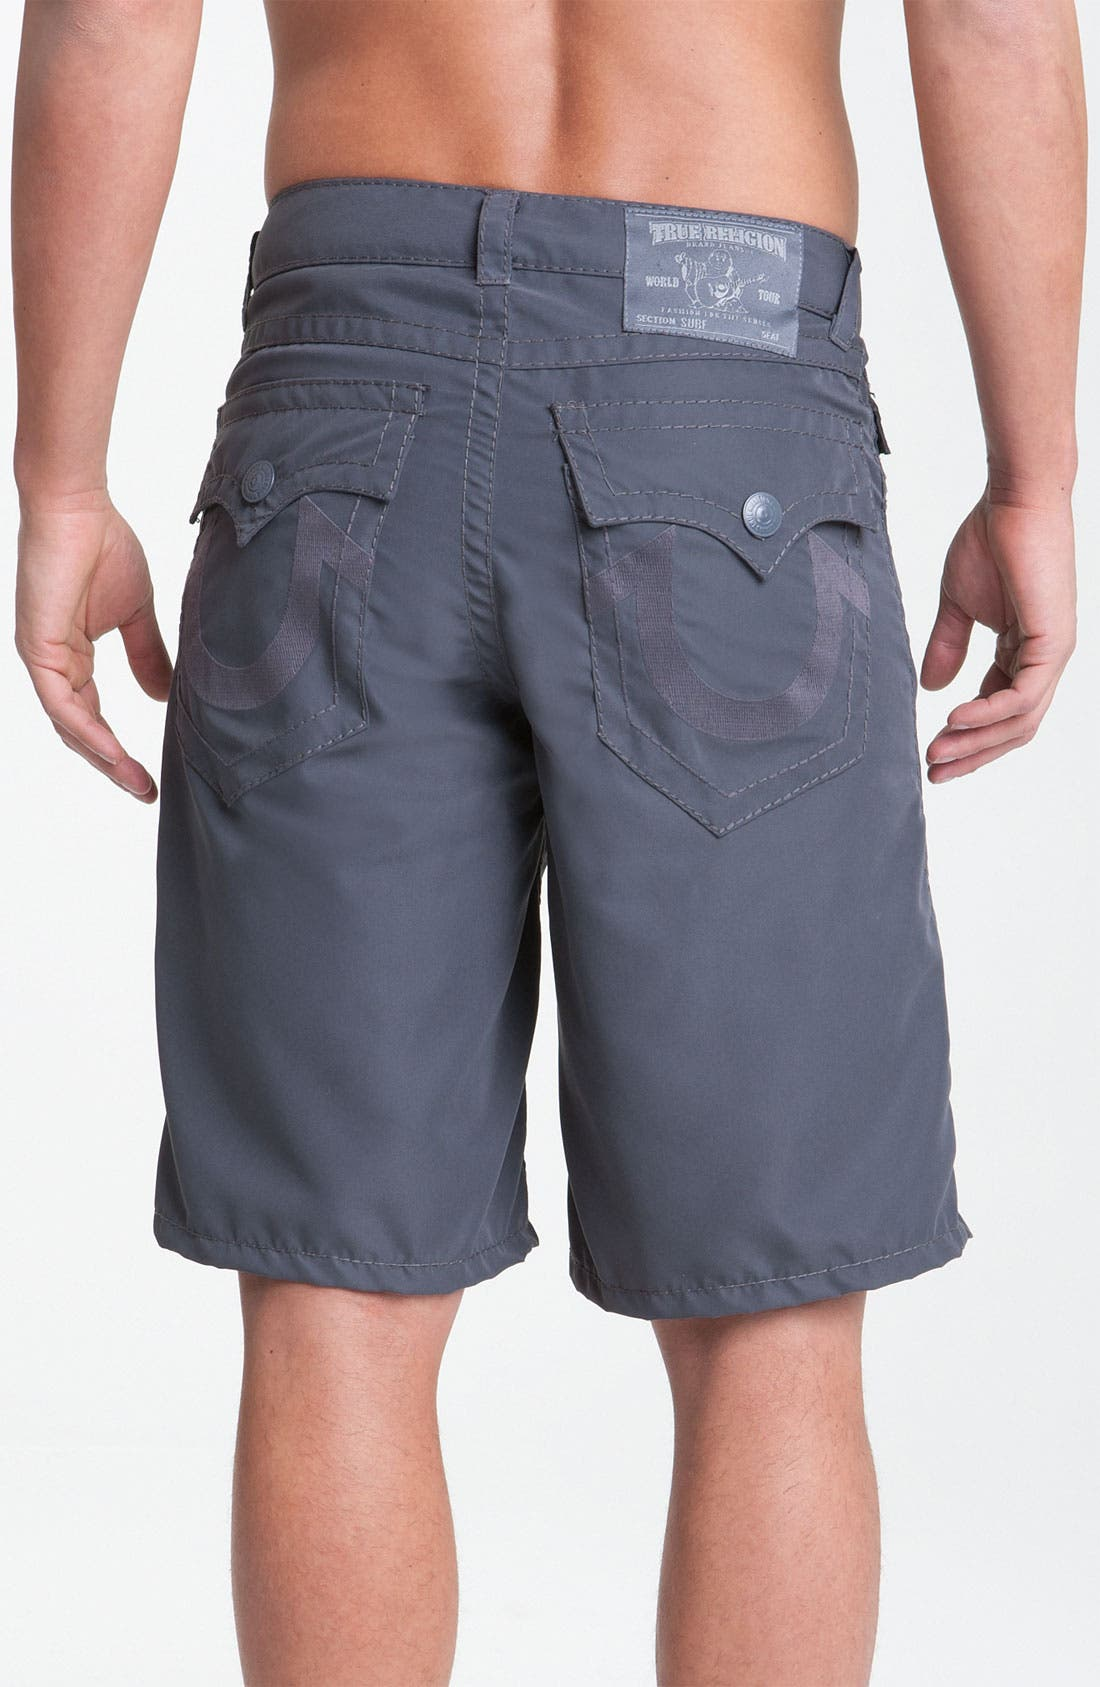 Alternate Image 1 Selected - True Religion Brand Jeans 'PCH' Board Shorts